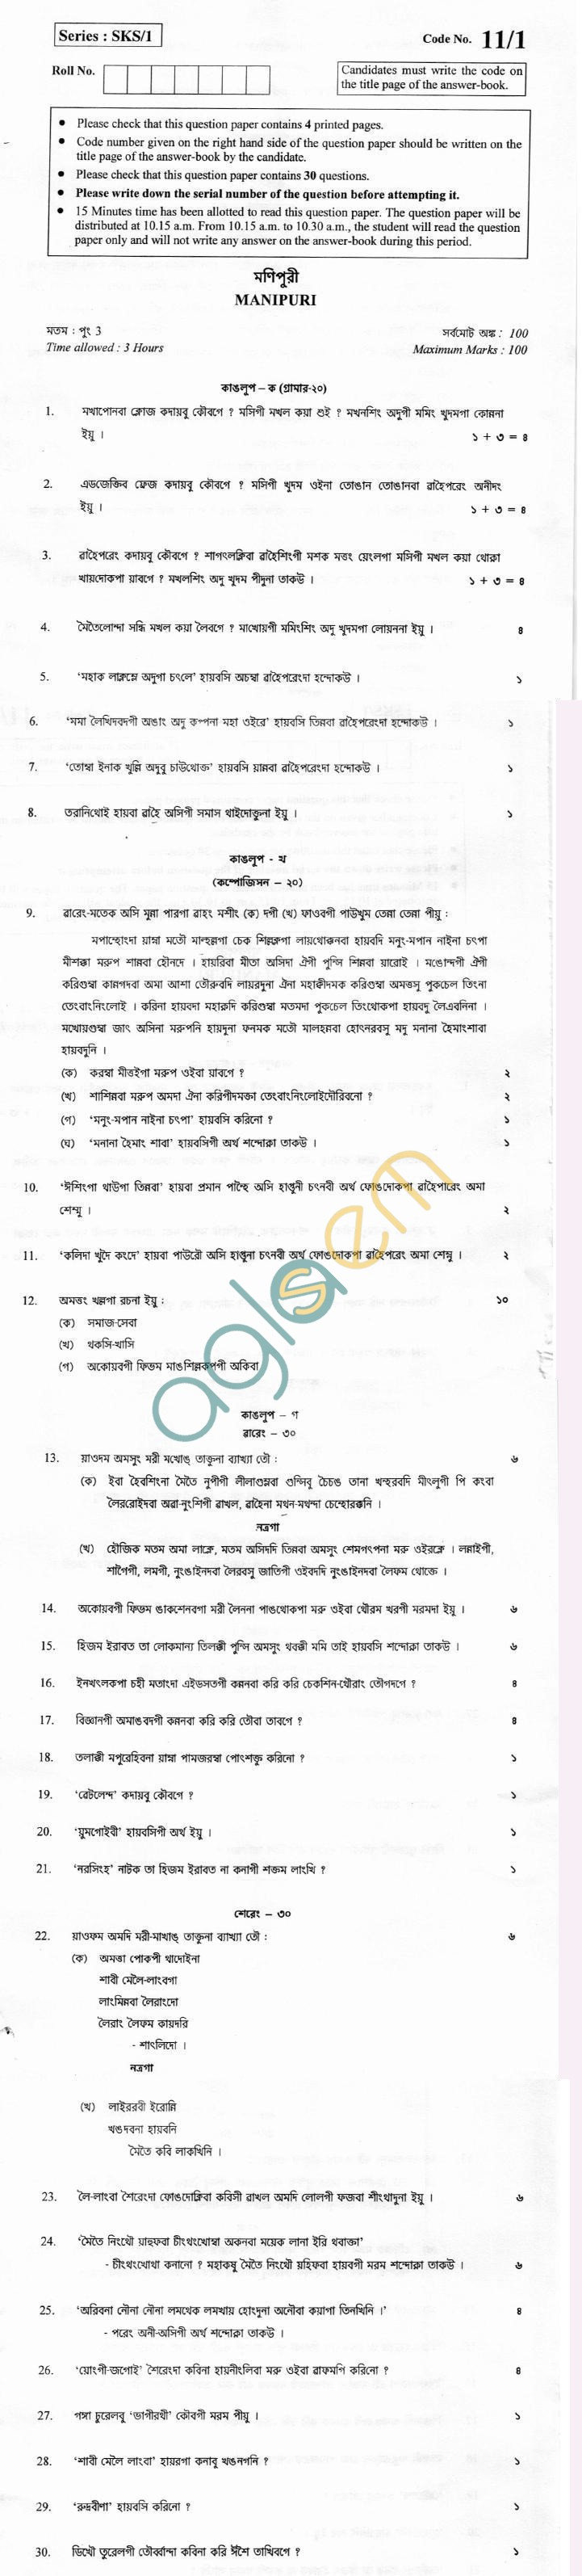 CBSE Board Exam 2013 Class XII Question Paper - Manipuri